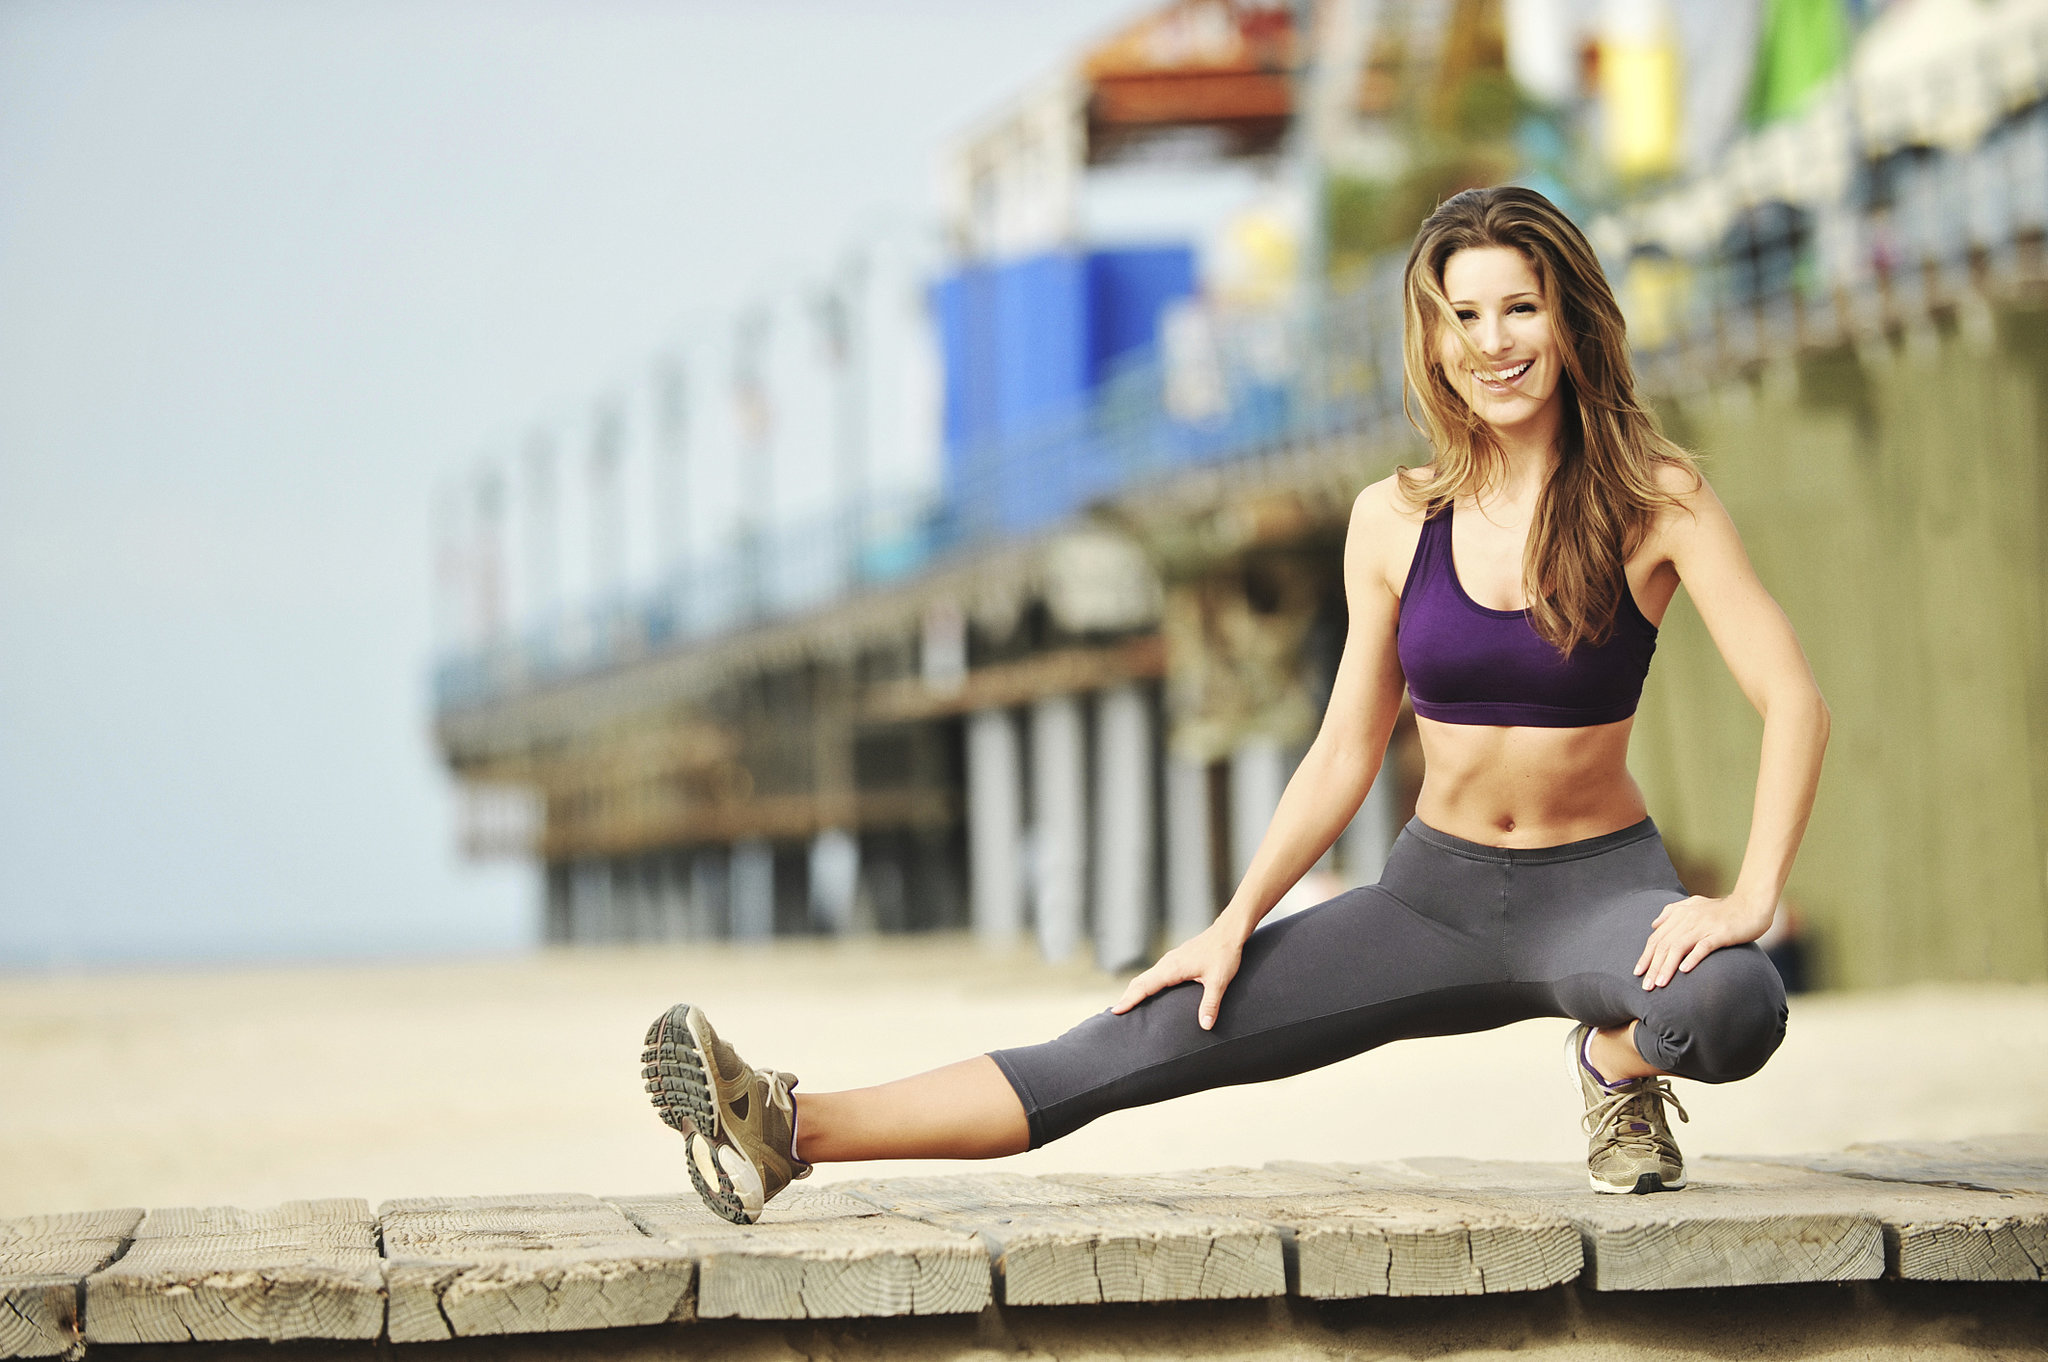 Do You Have to Wear a Sports Bra to Work Out? | POPSUGAR ...